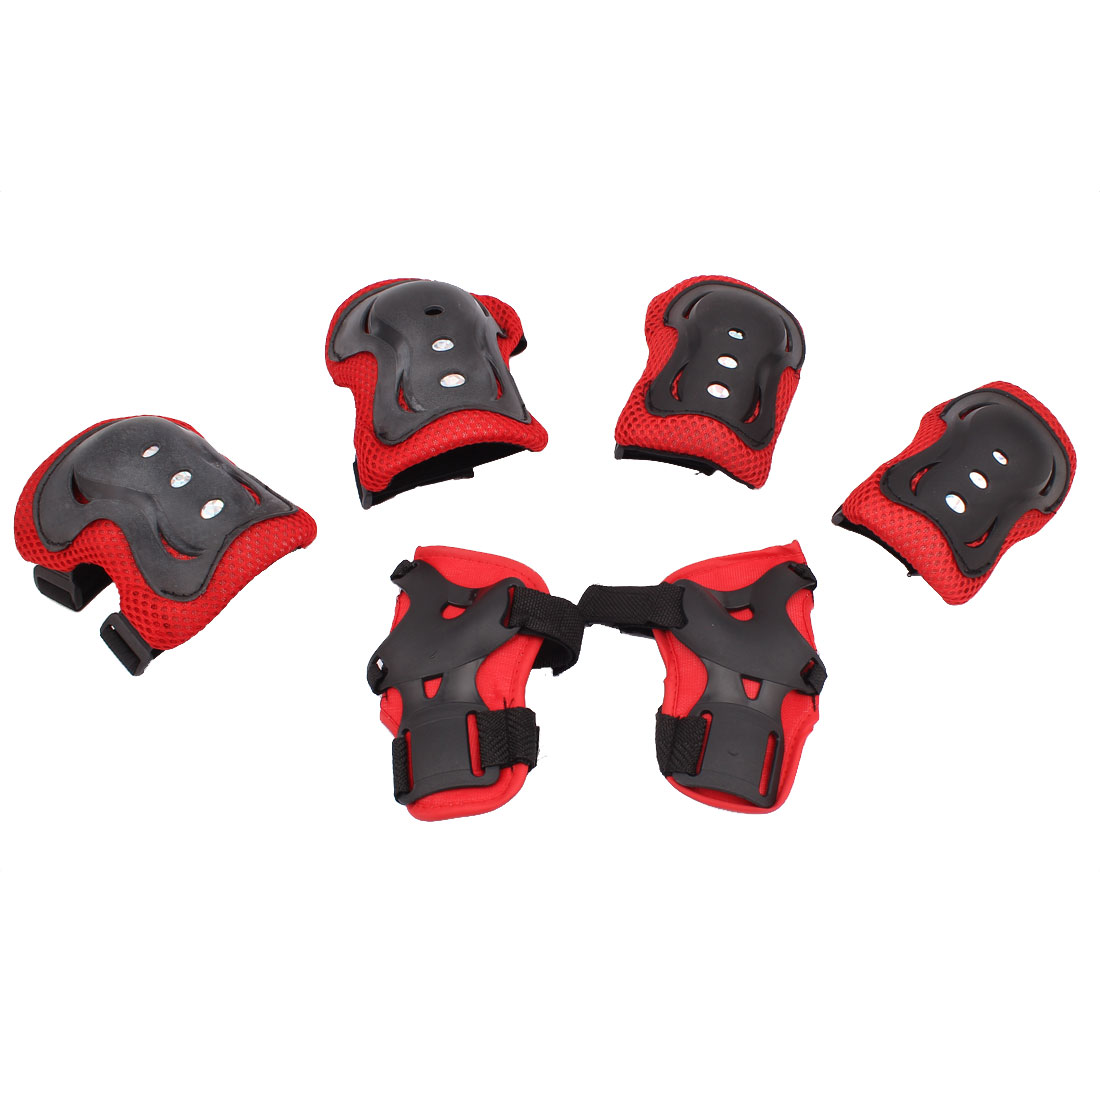 Skating Sports Palm Elbow Knee Support Guard Pad Protector Set Red Black 6 in 1